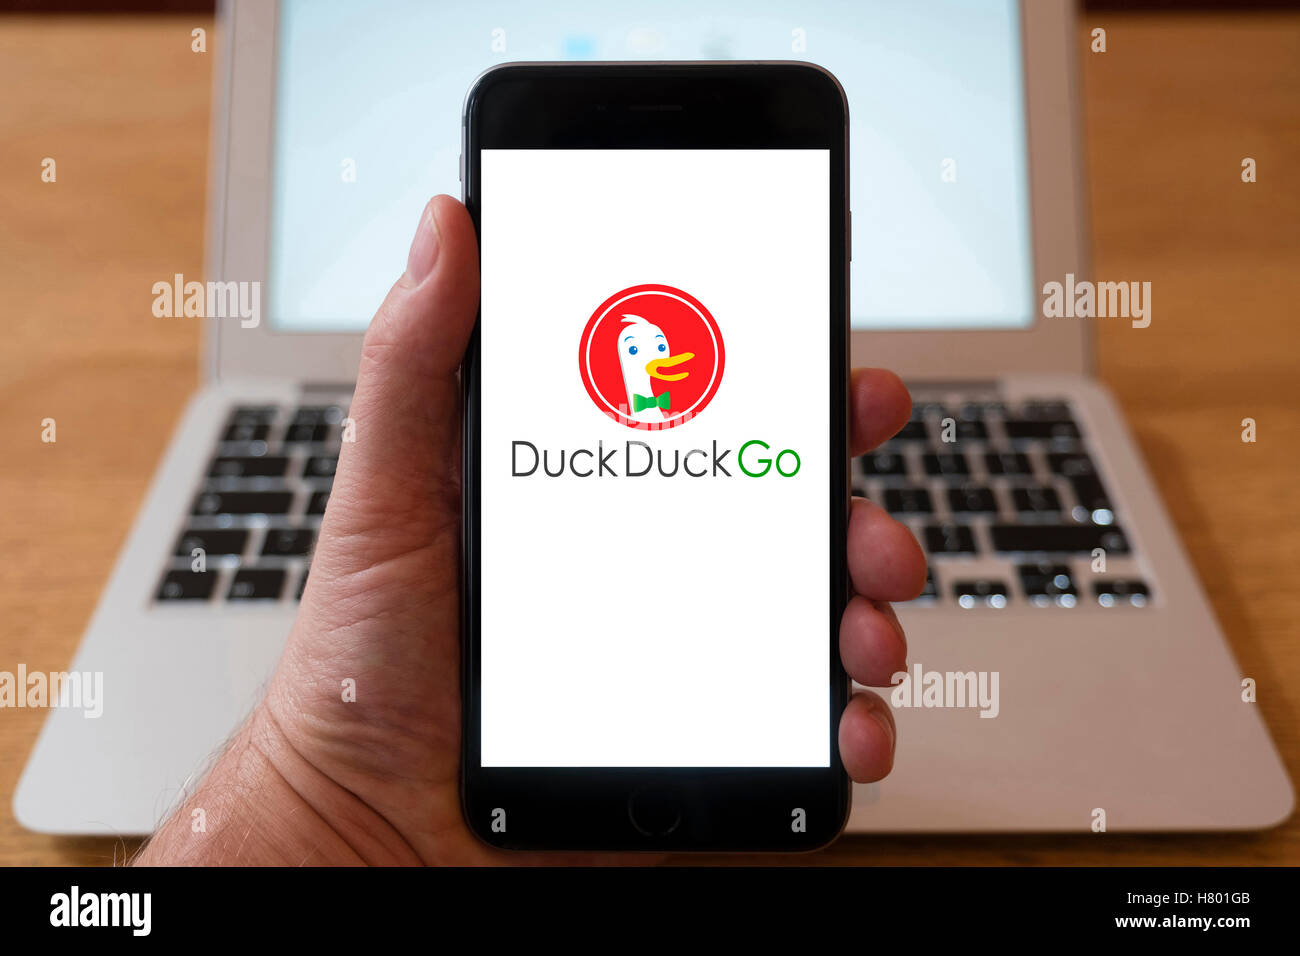 Using iPhone smartphone to display logo of Duck Duck Go search engine portal - Stock Image